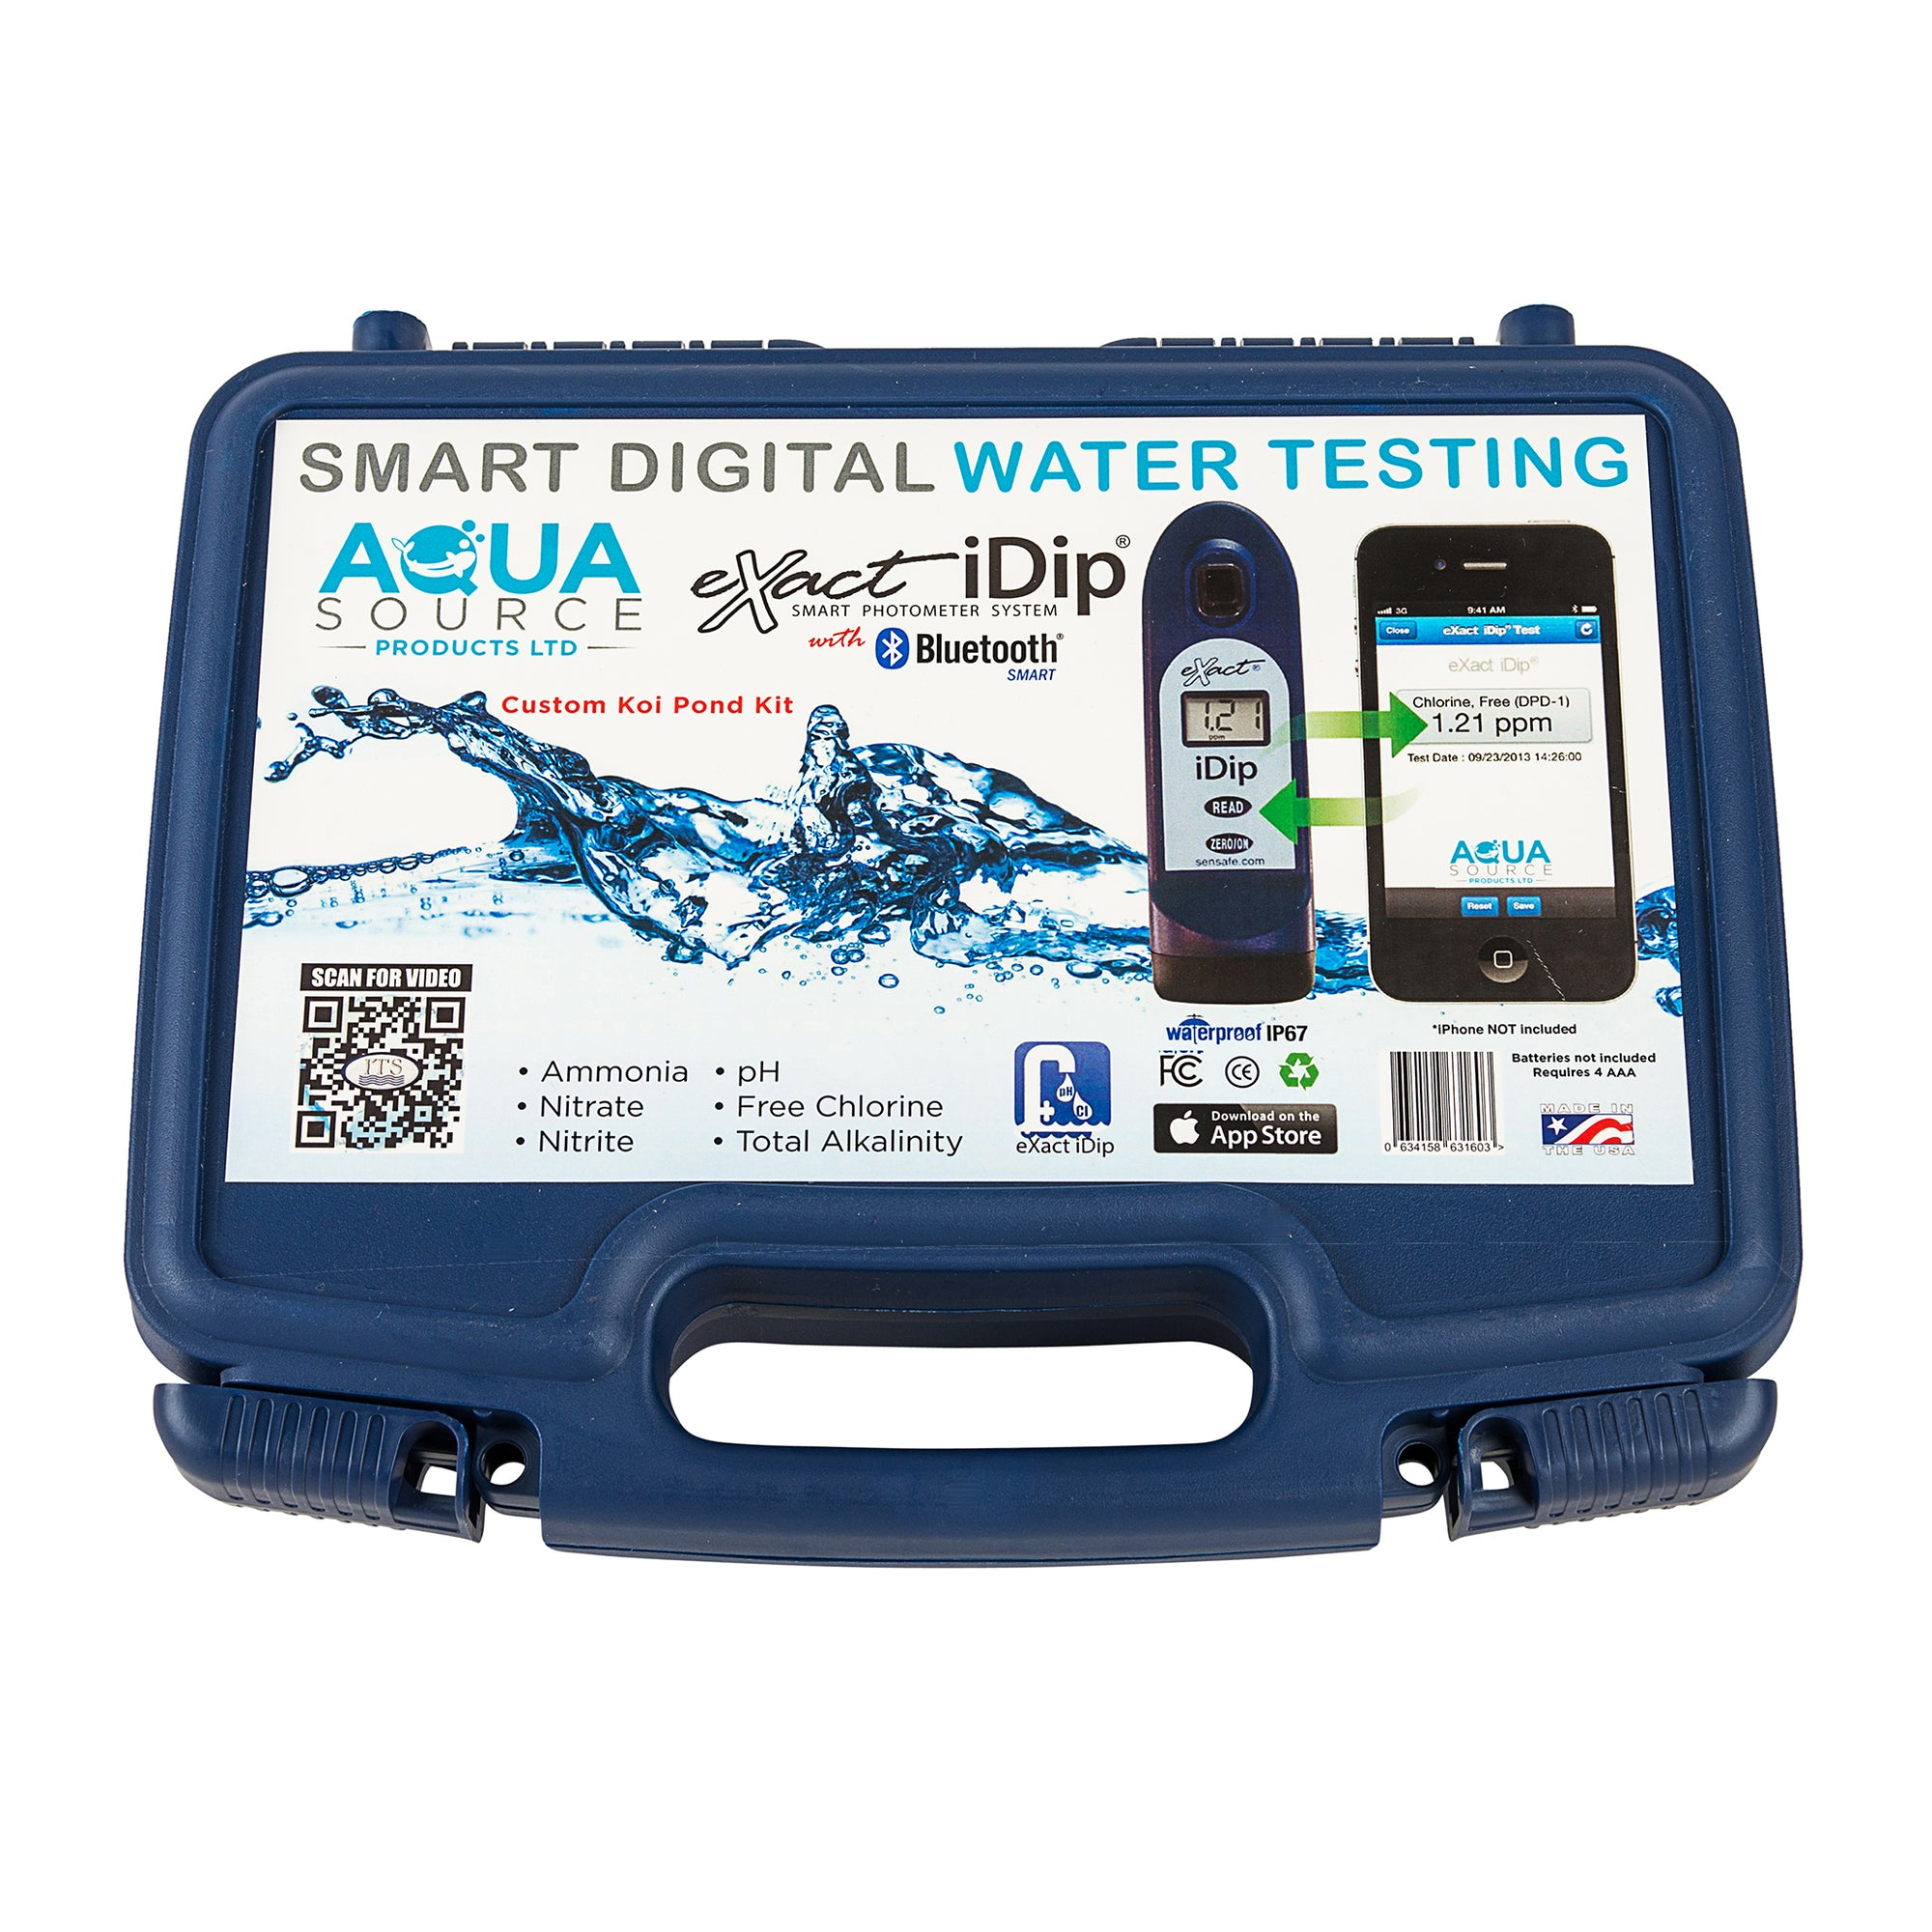 eXact iDip - Digital Water Testing - Smart Photometer - Digital Water testing for koi ponds